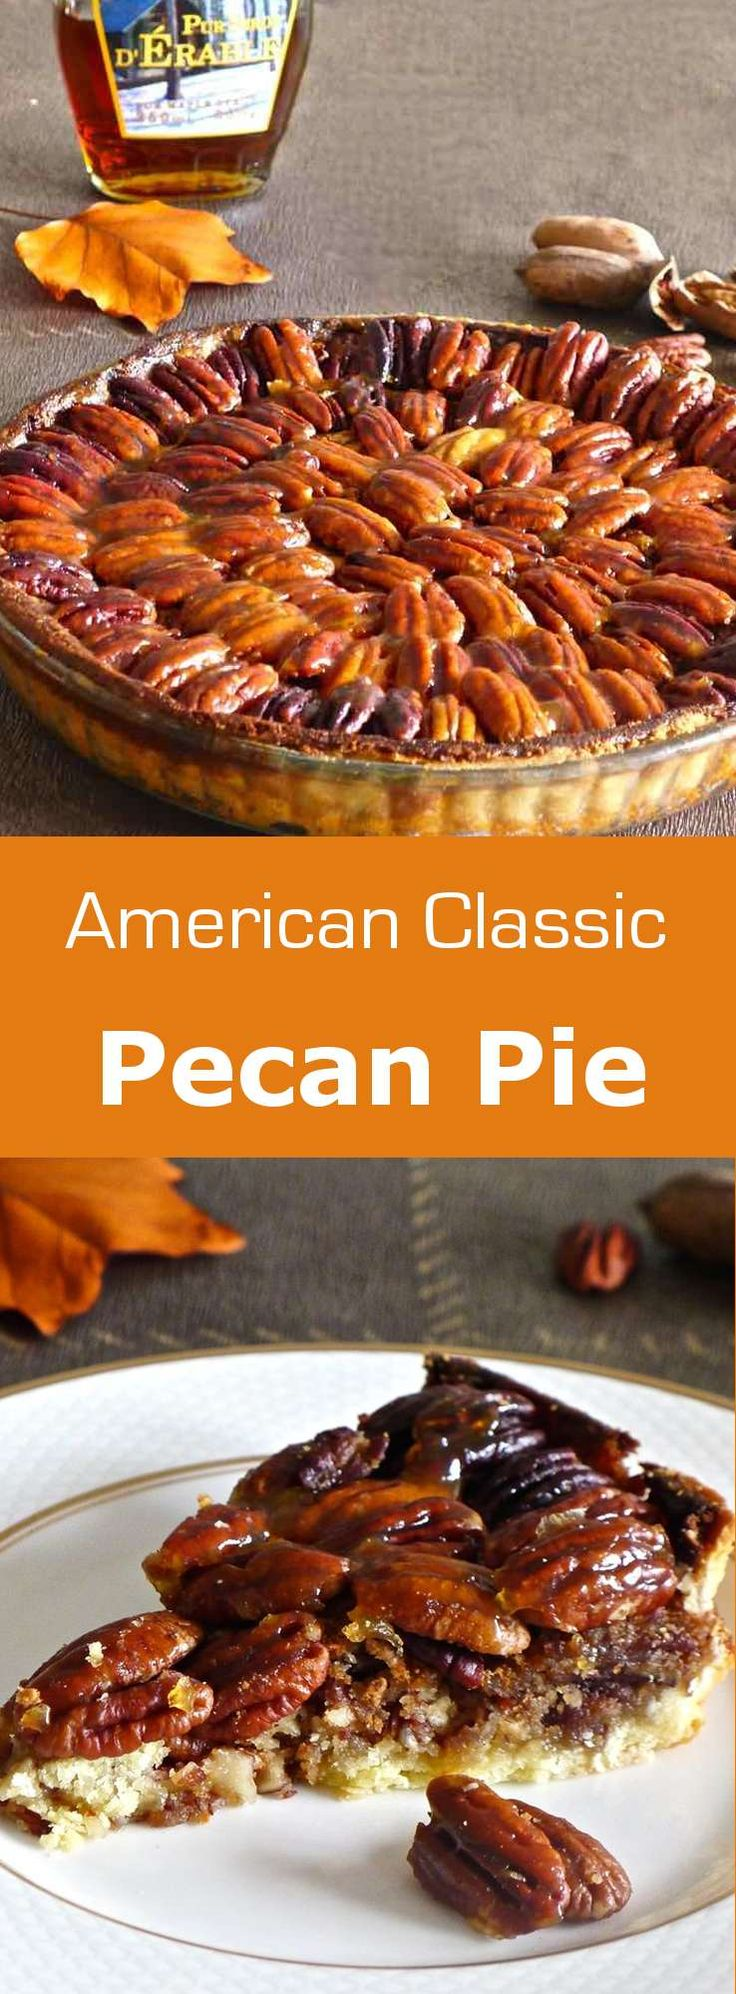 Some attribute the origin of pecan pie to Louisiana, while others claim the…